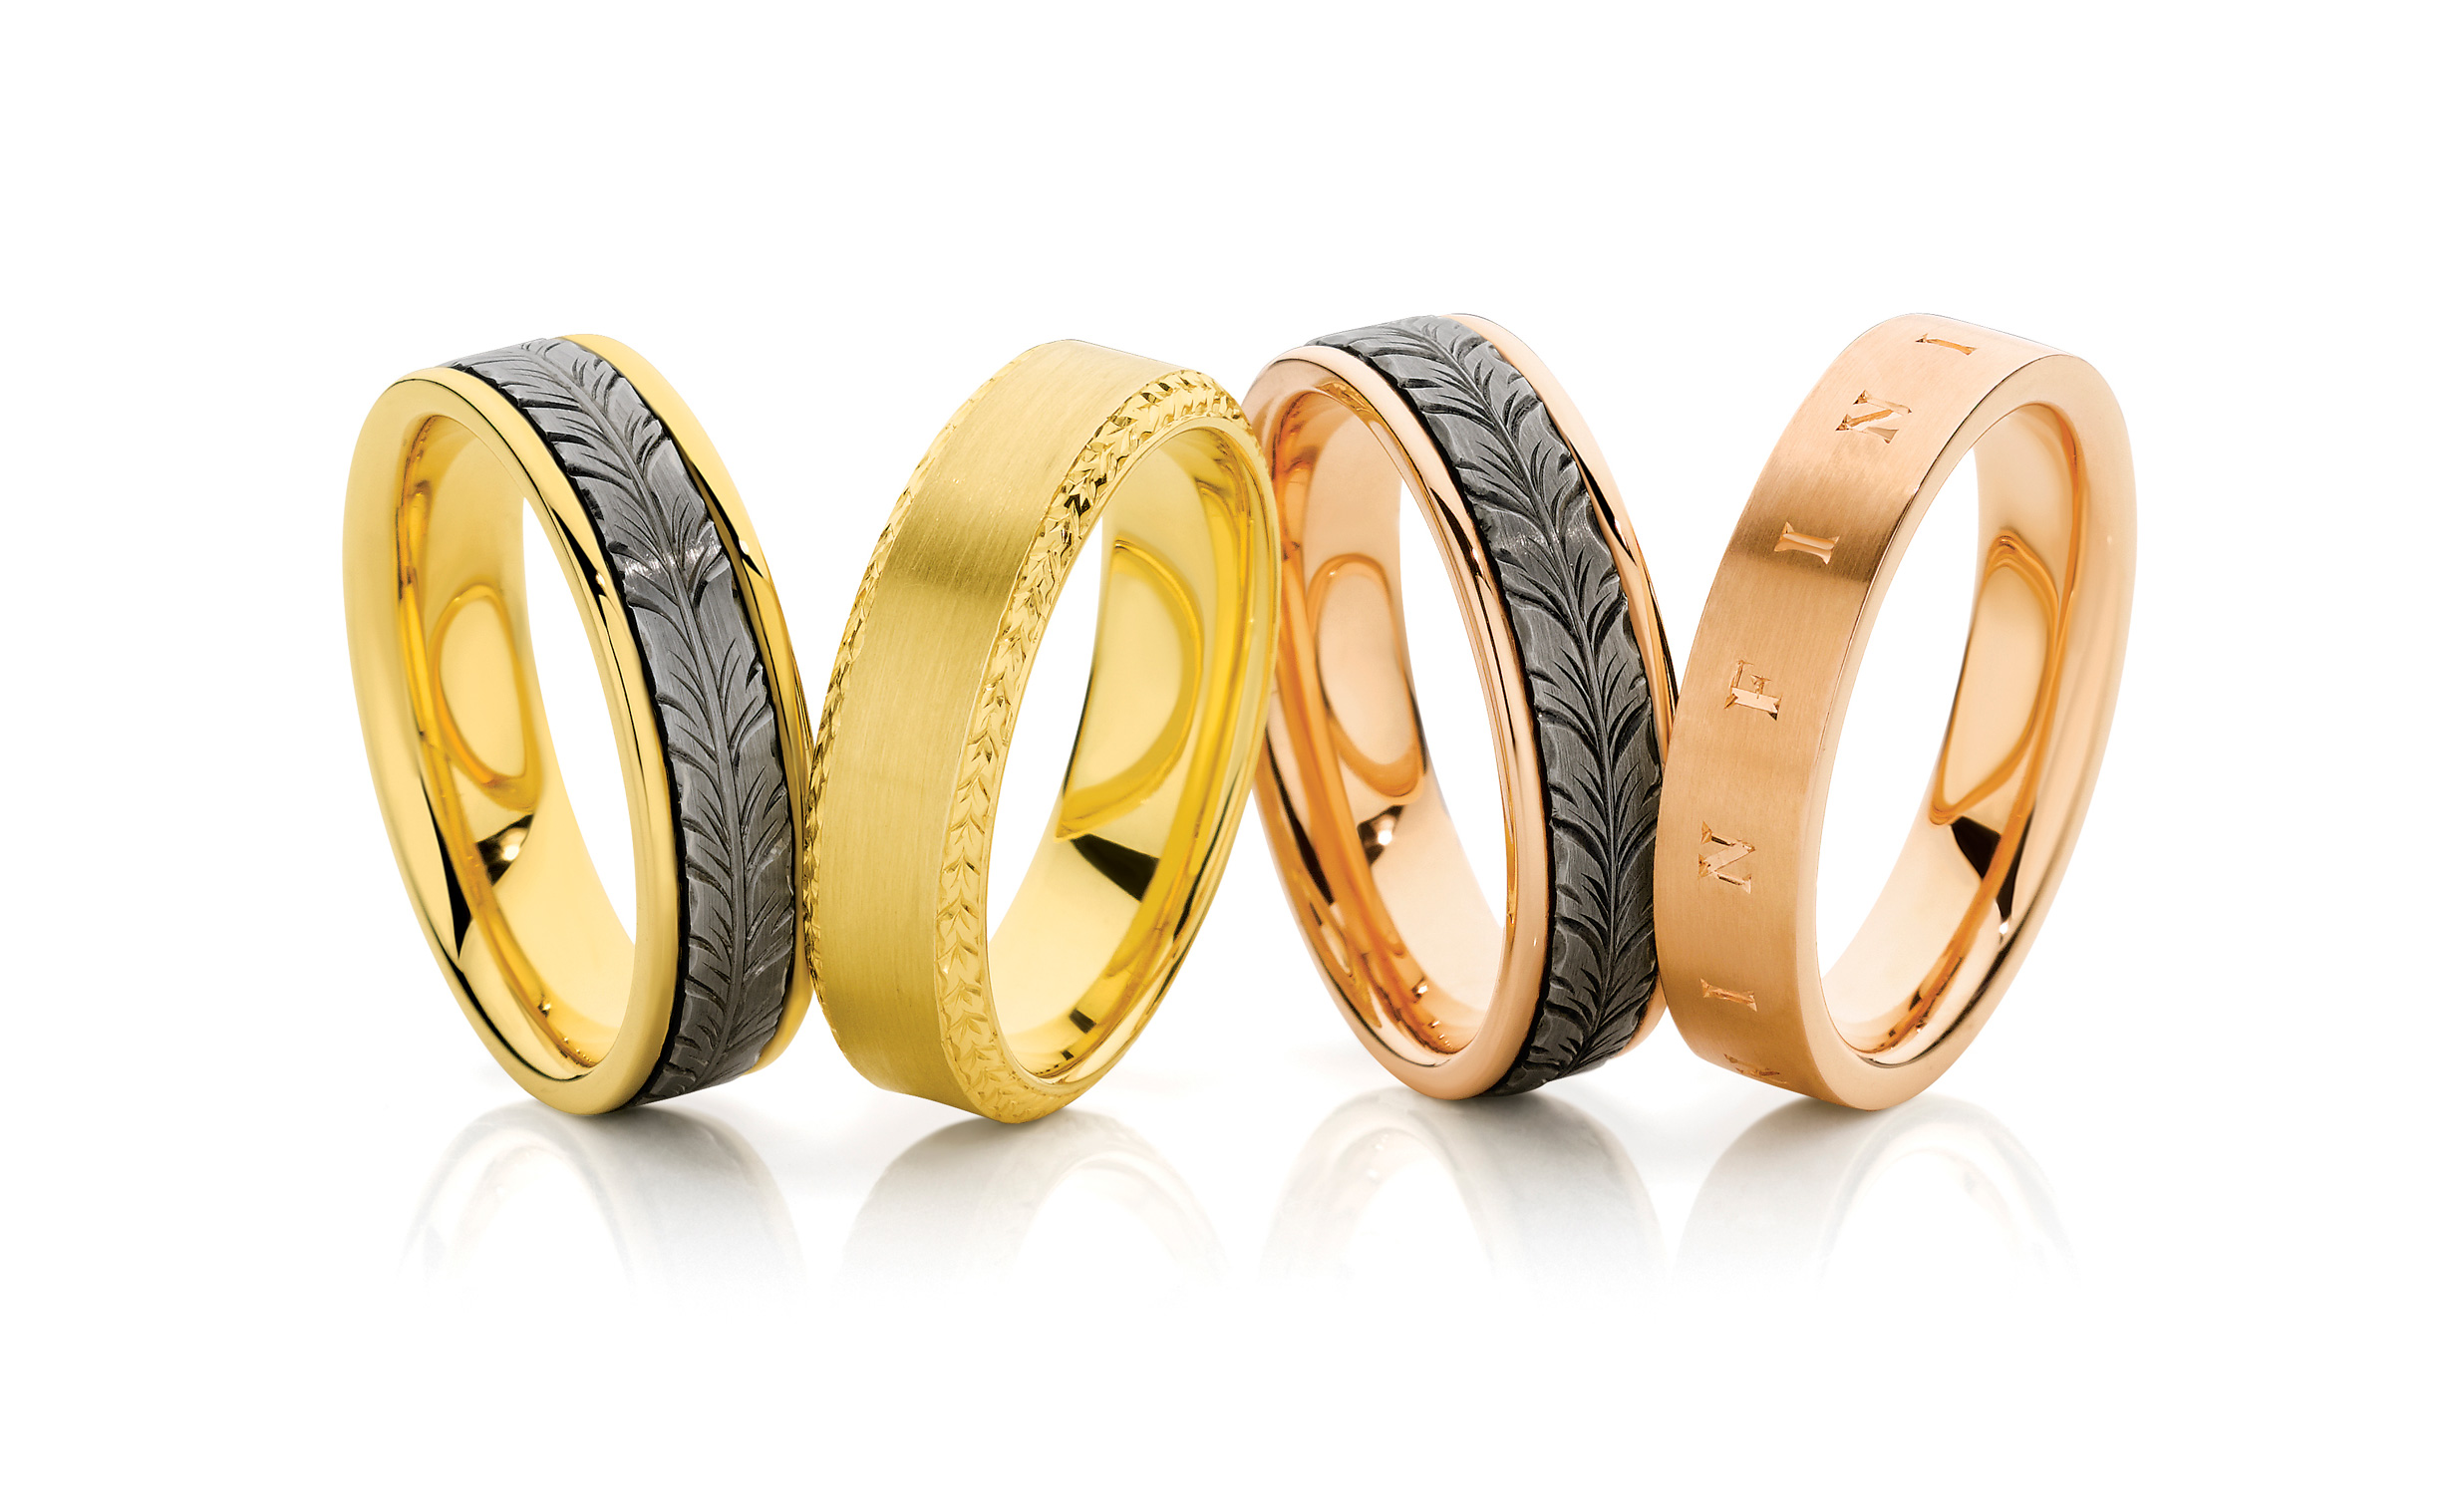 Quill-INFINII-engraved-rings.jpg